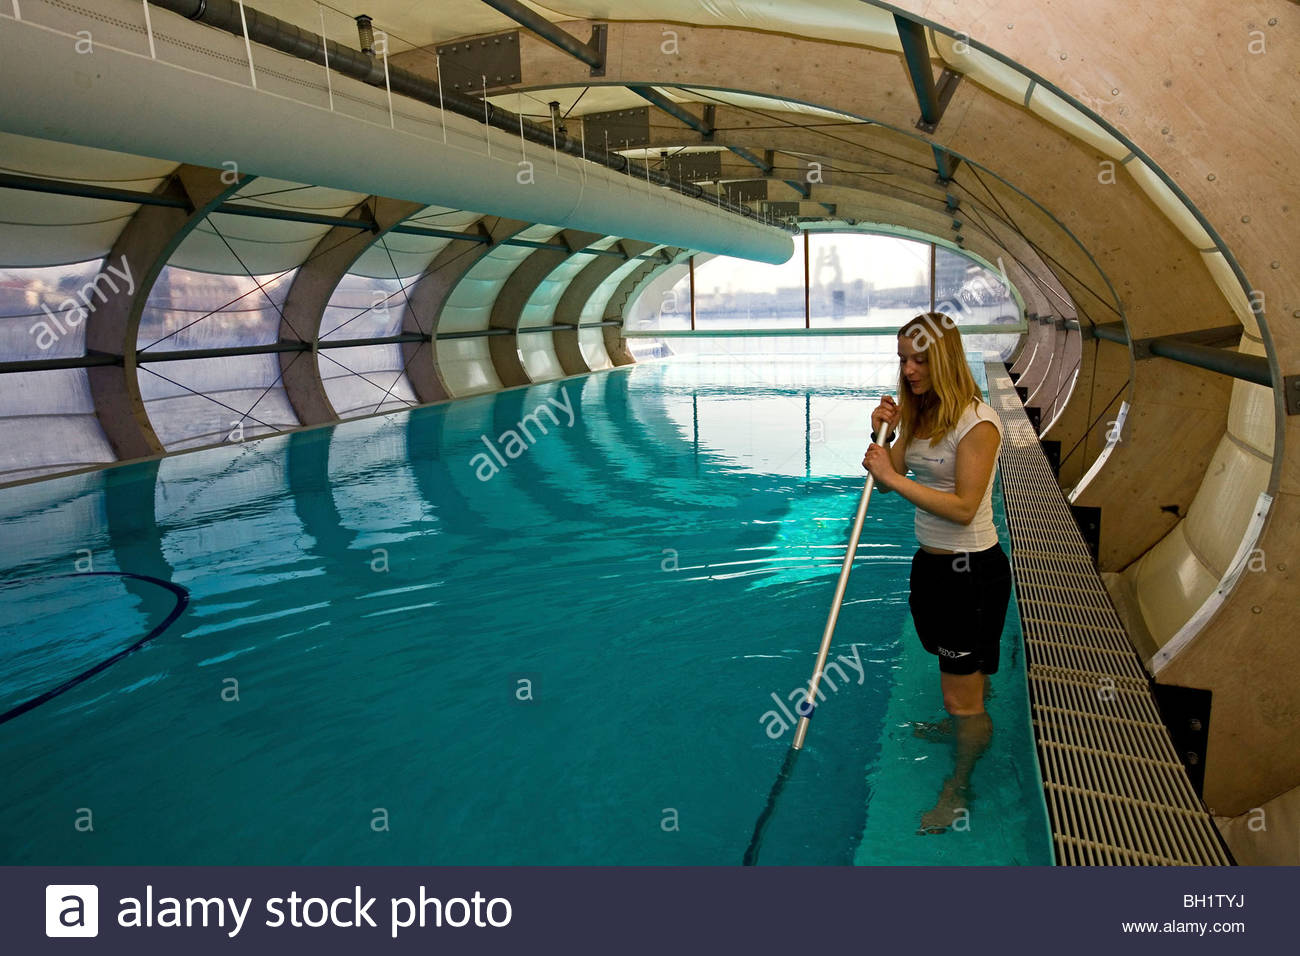 River Pool Berlin Stockfotos & River Pool Berlin Bilder - Alamy